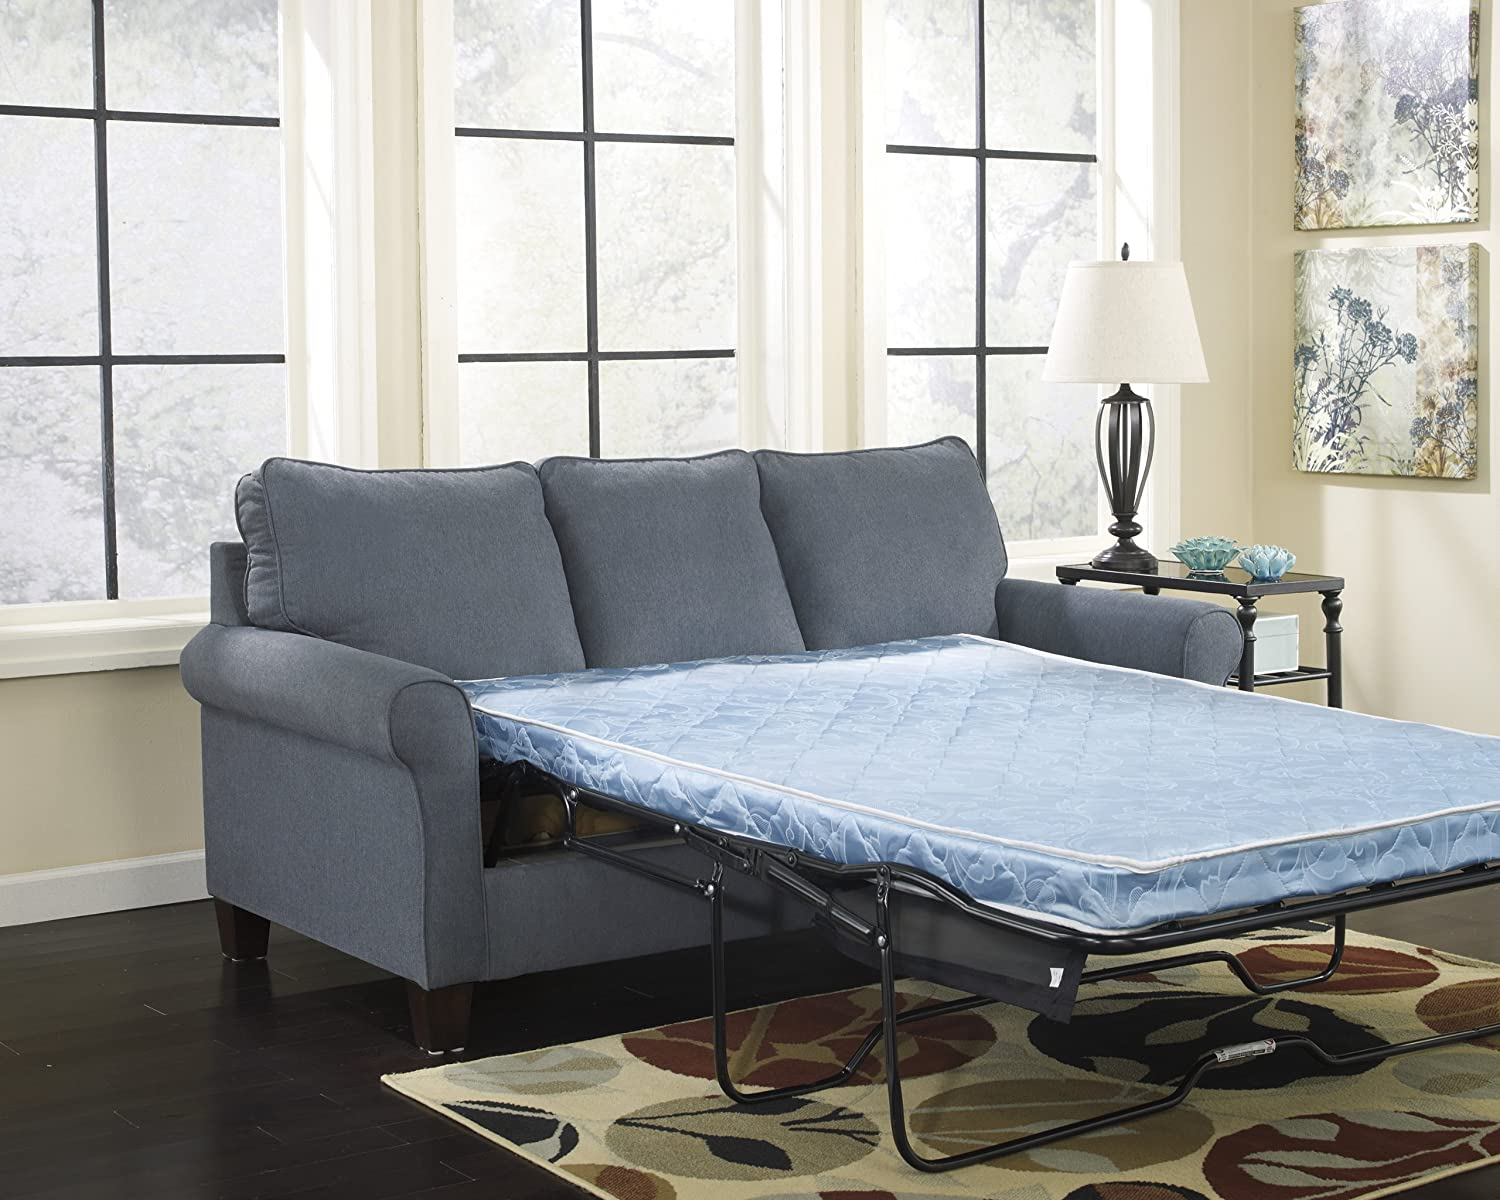 Amazon.com: Zeth Denim Tone Fabric Upholstery Contemporary Design Full Size Sofa  Sleeper: Kitchen U0026 Dining